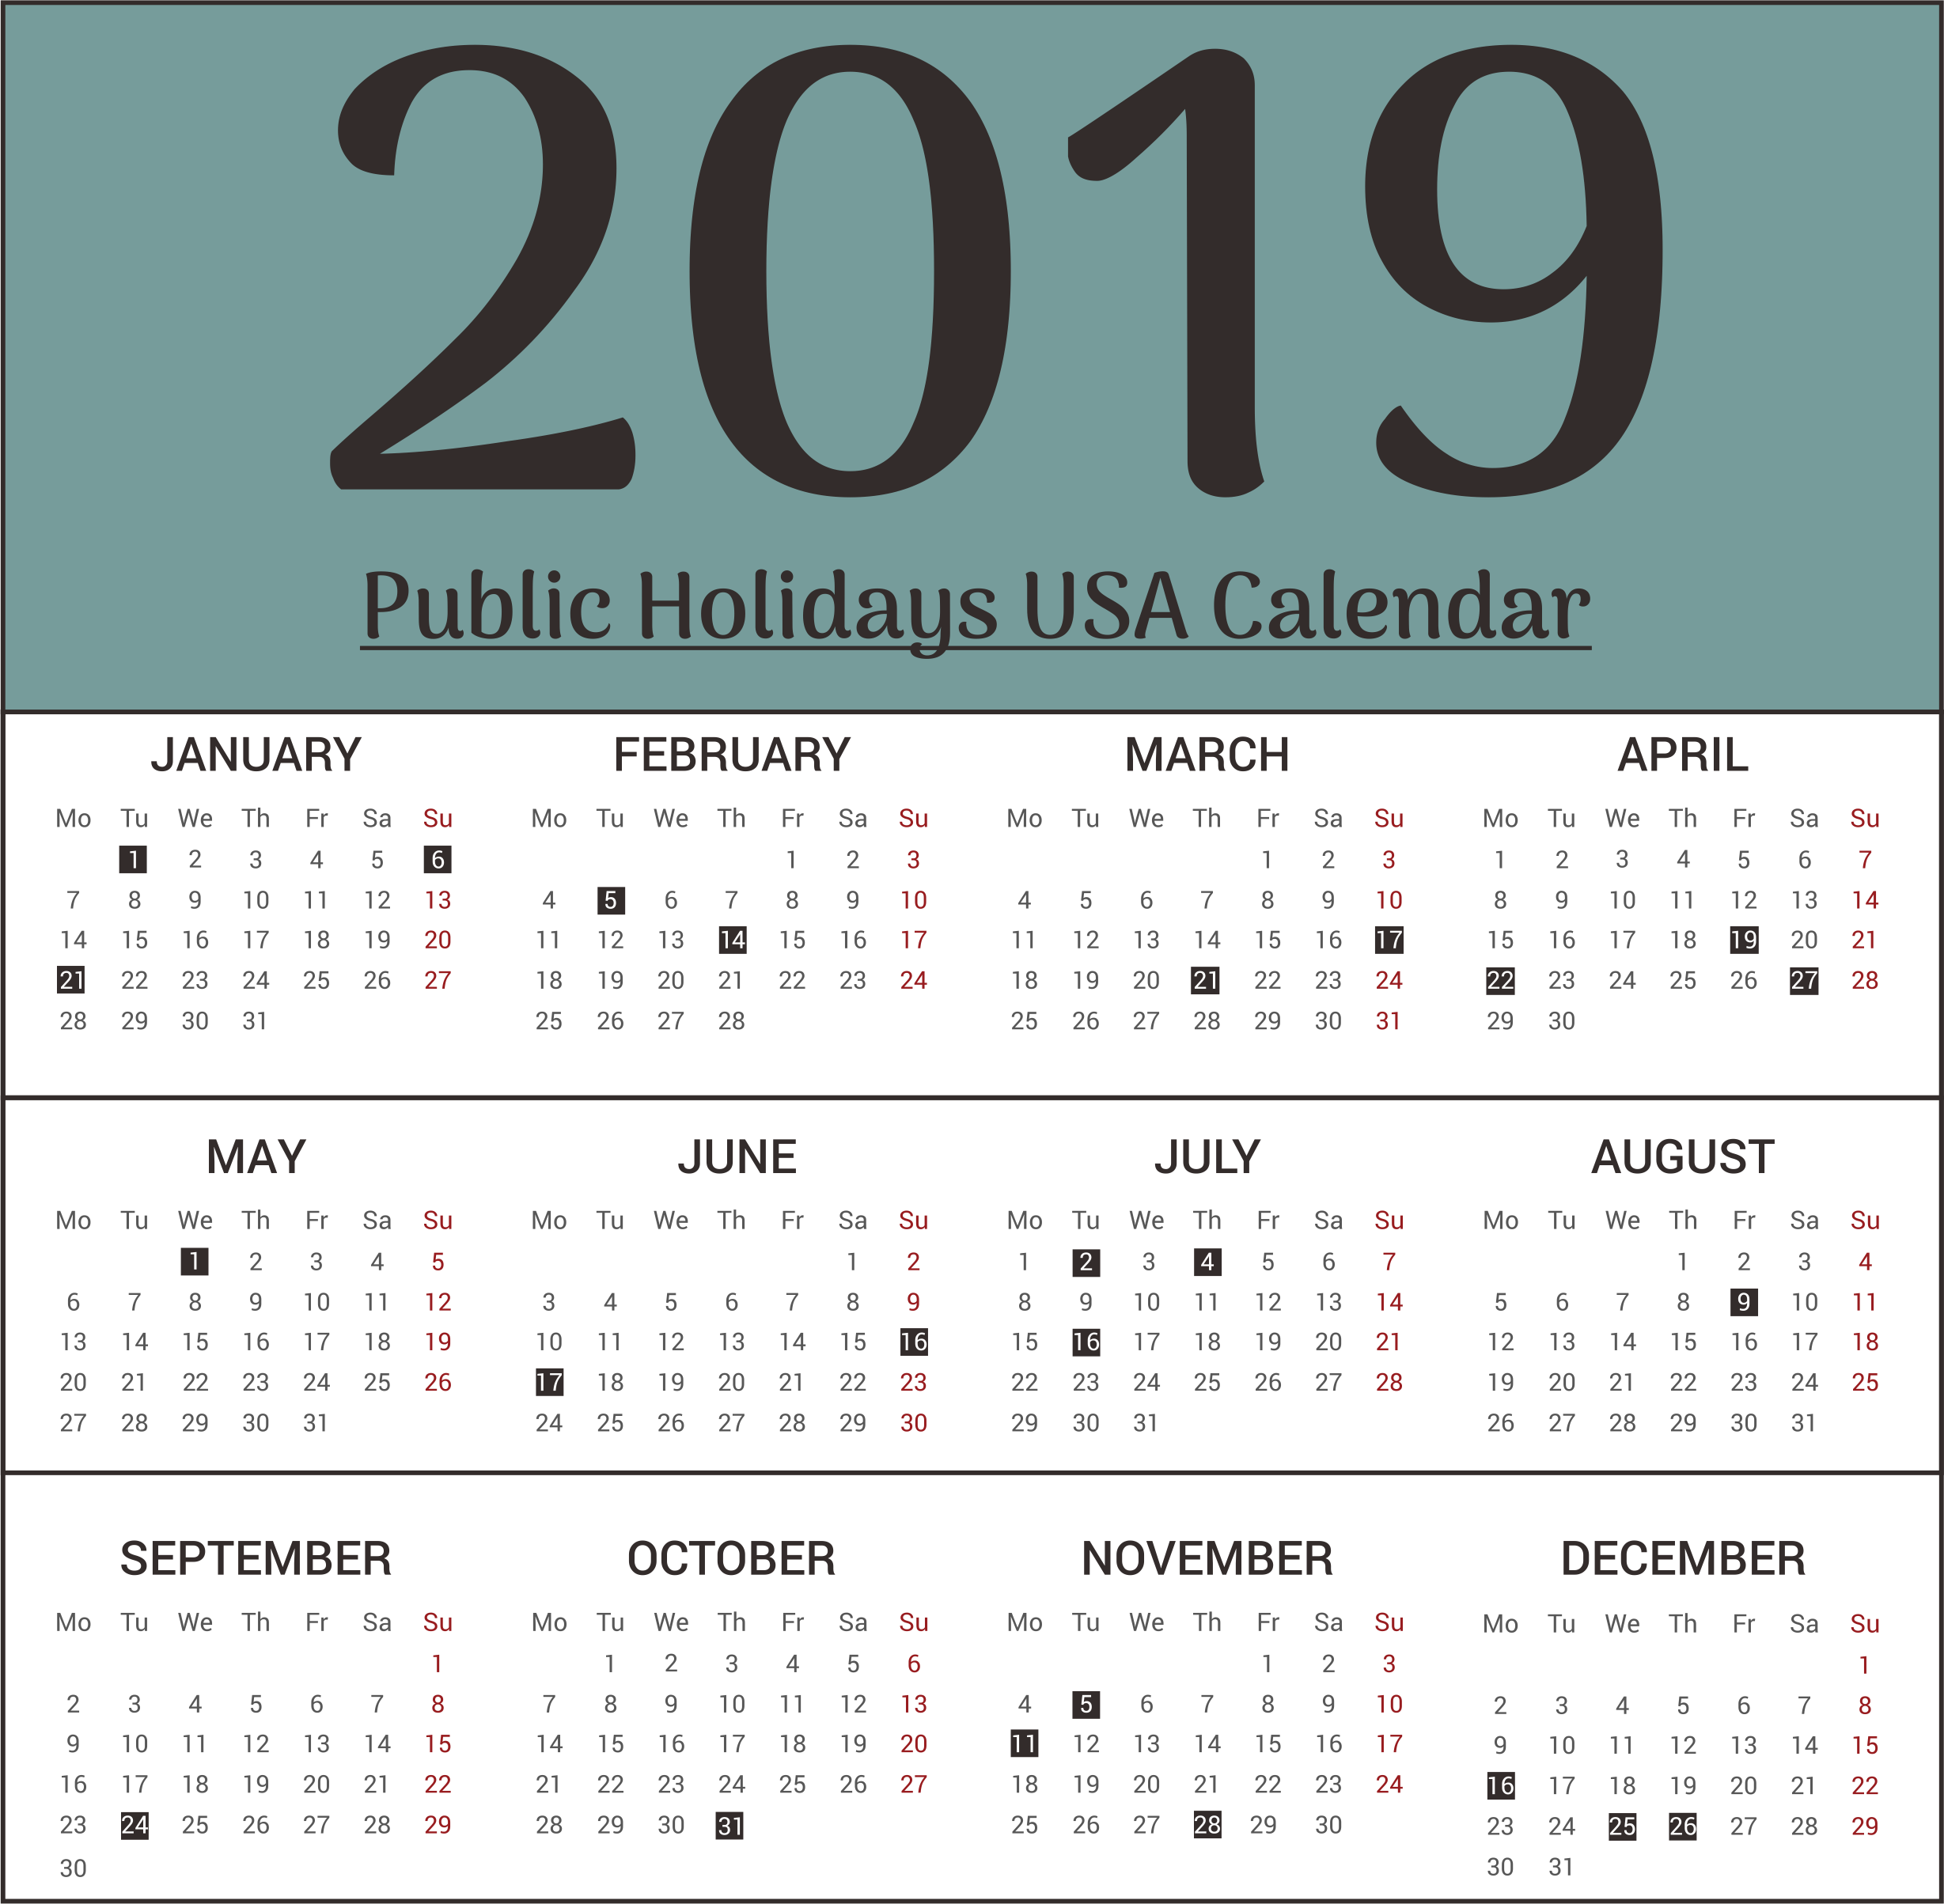 USA Public Holiday 2019 Calendar